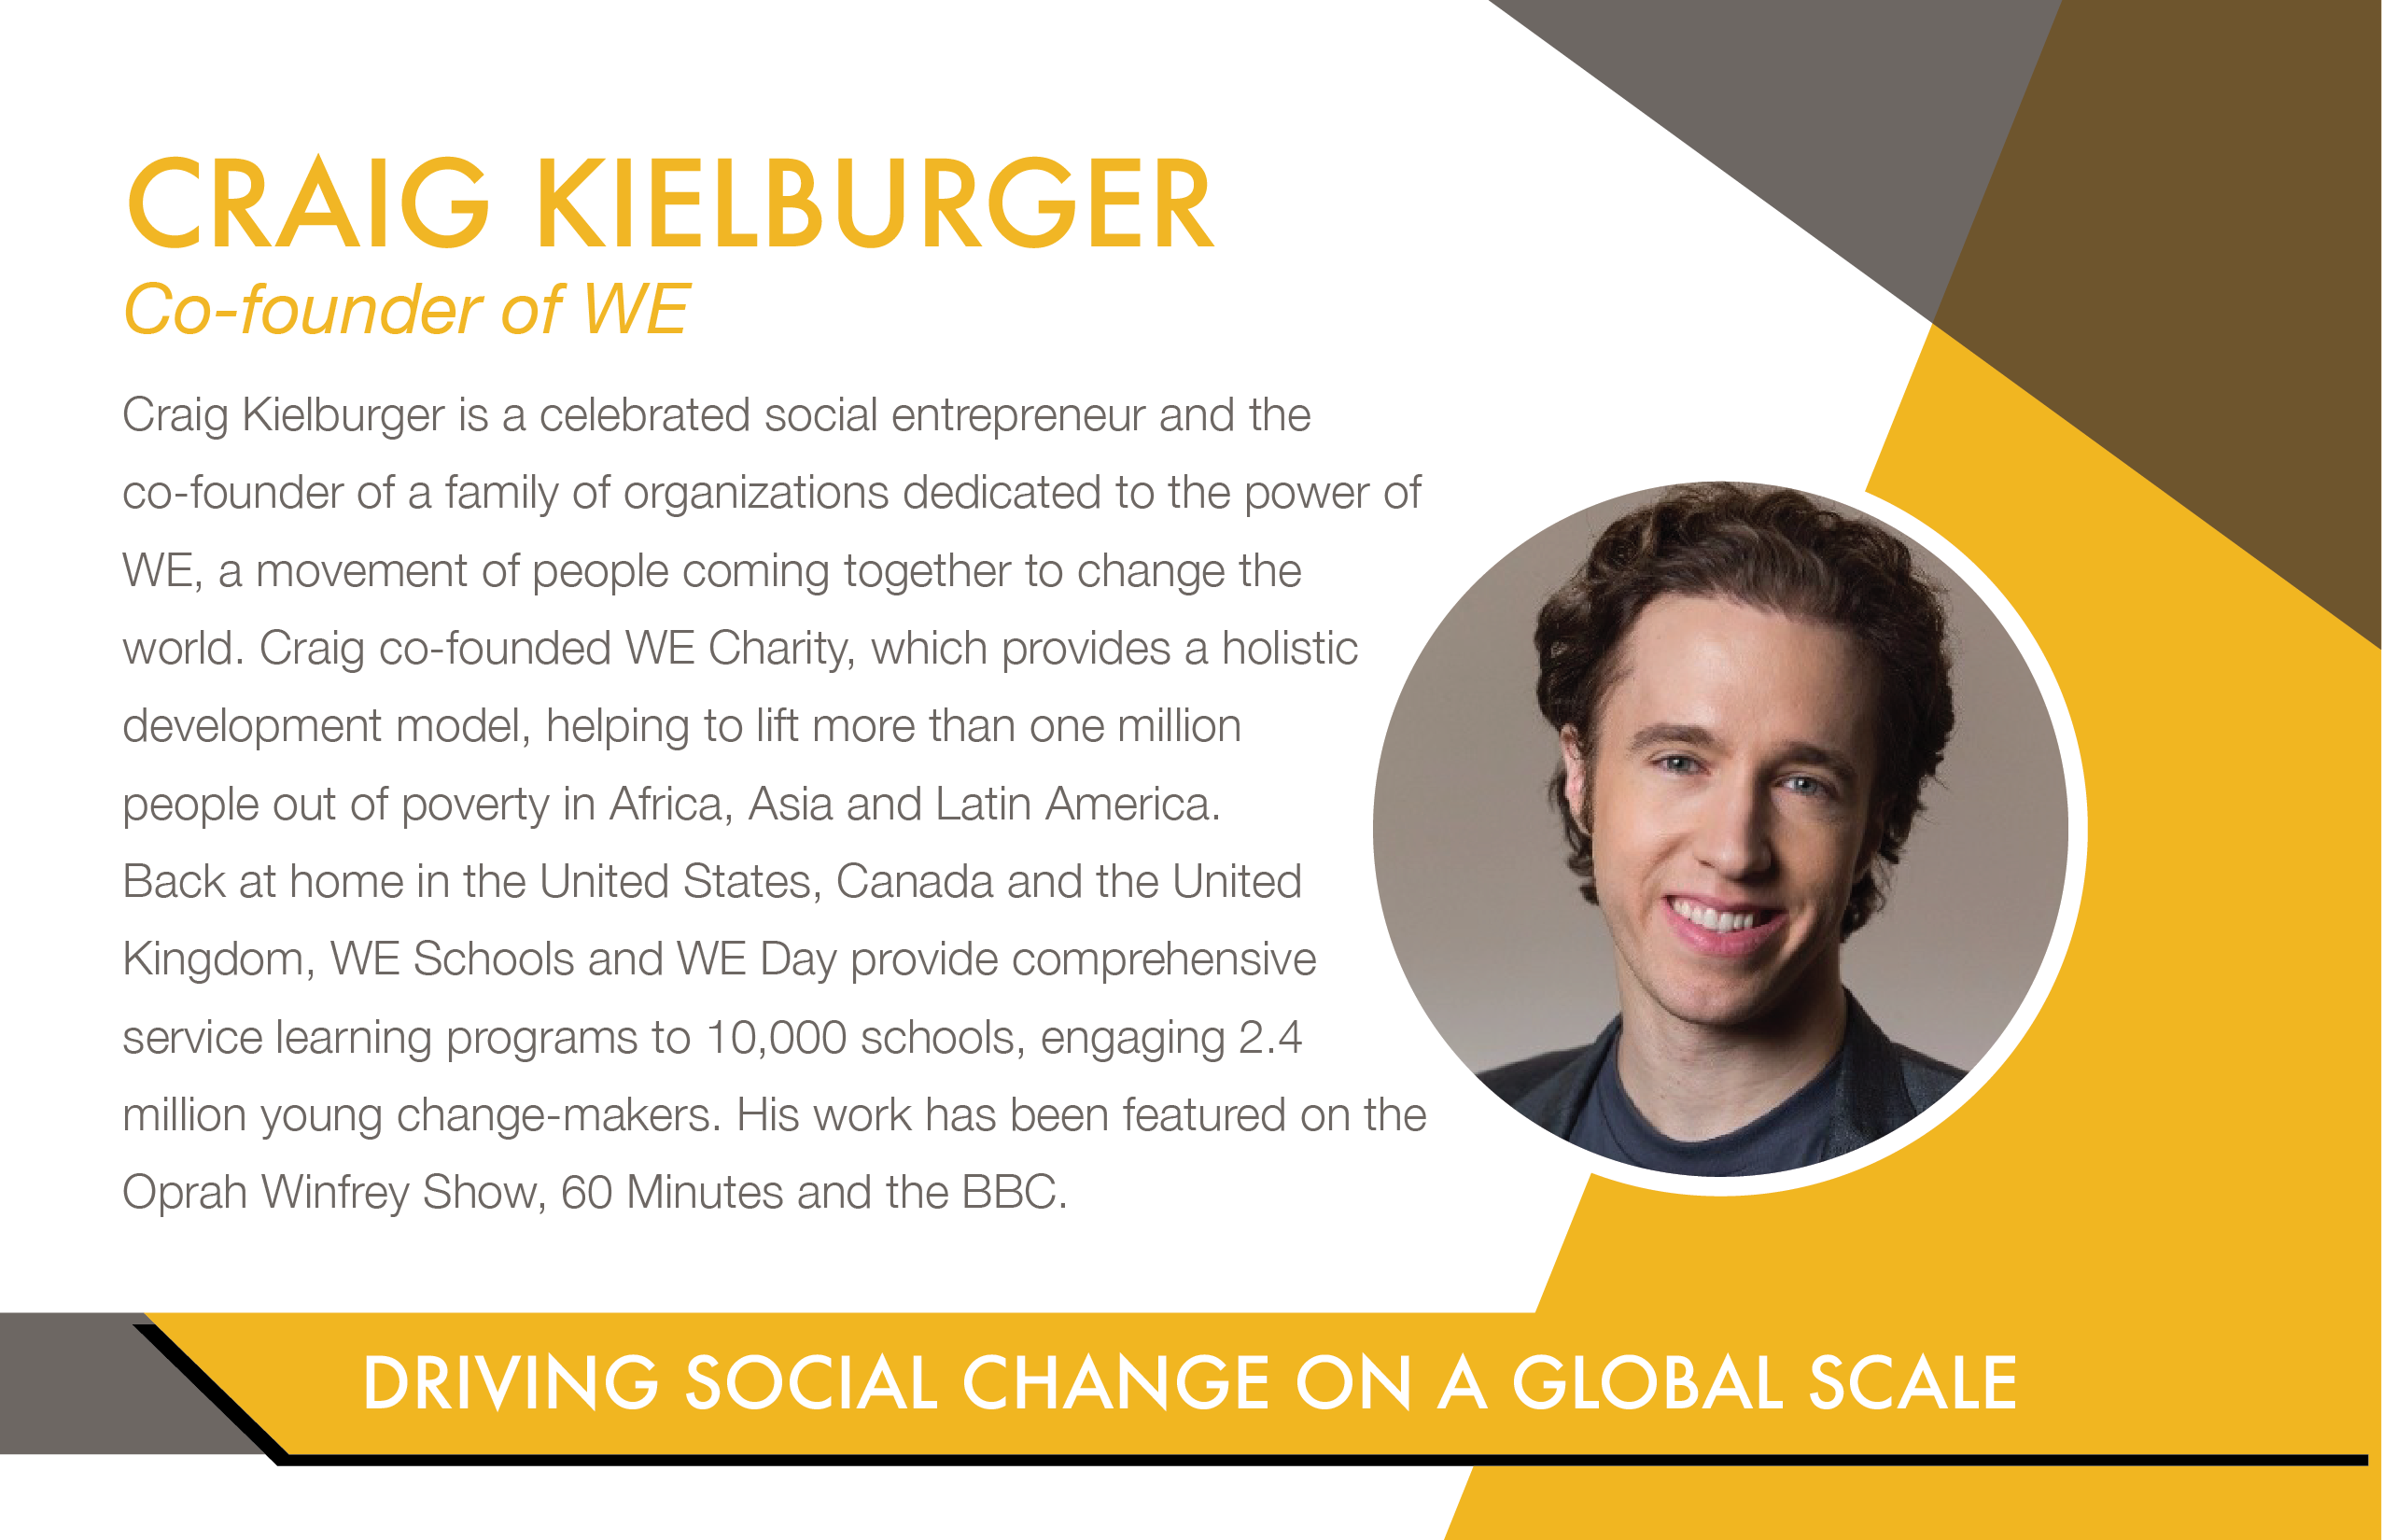 Craig Kielburger's Bio: Social Entrepreneur & Co-Founder of WE Charity